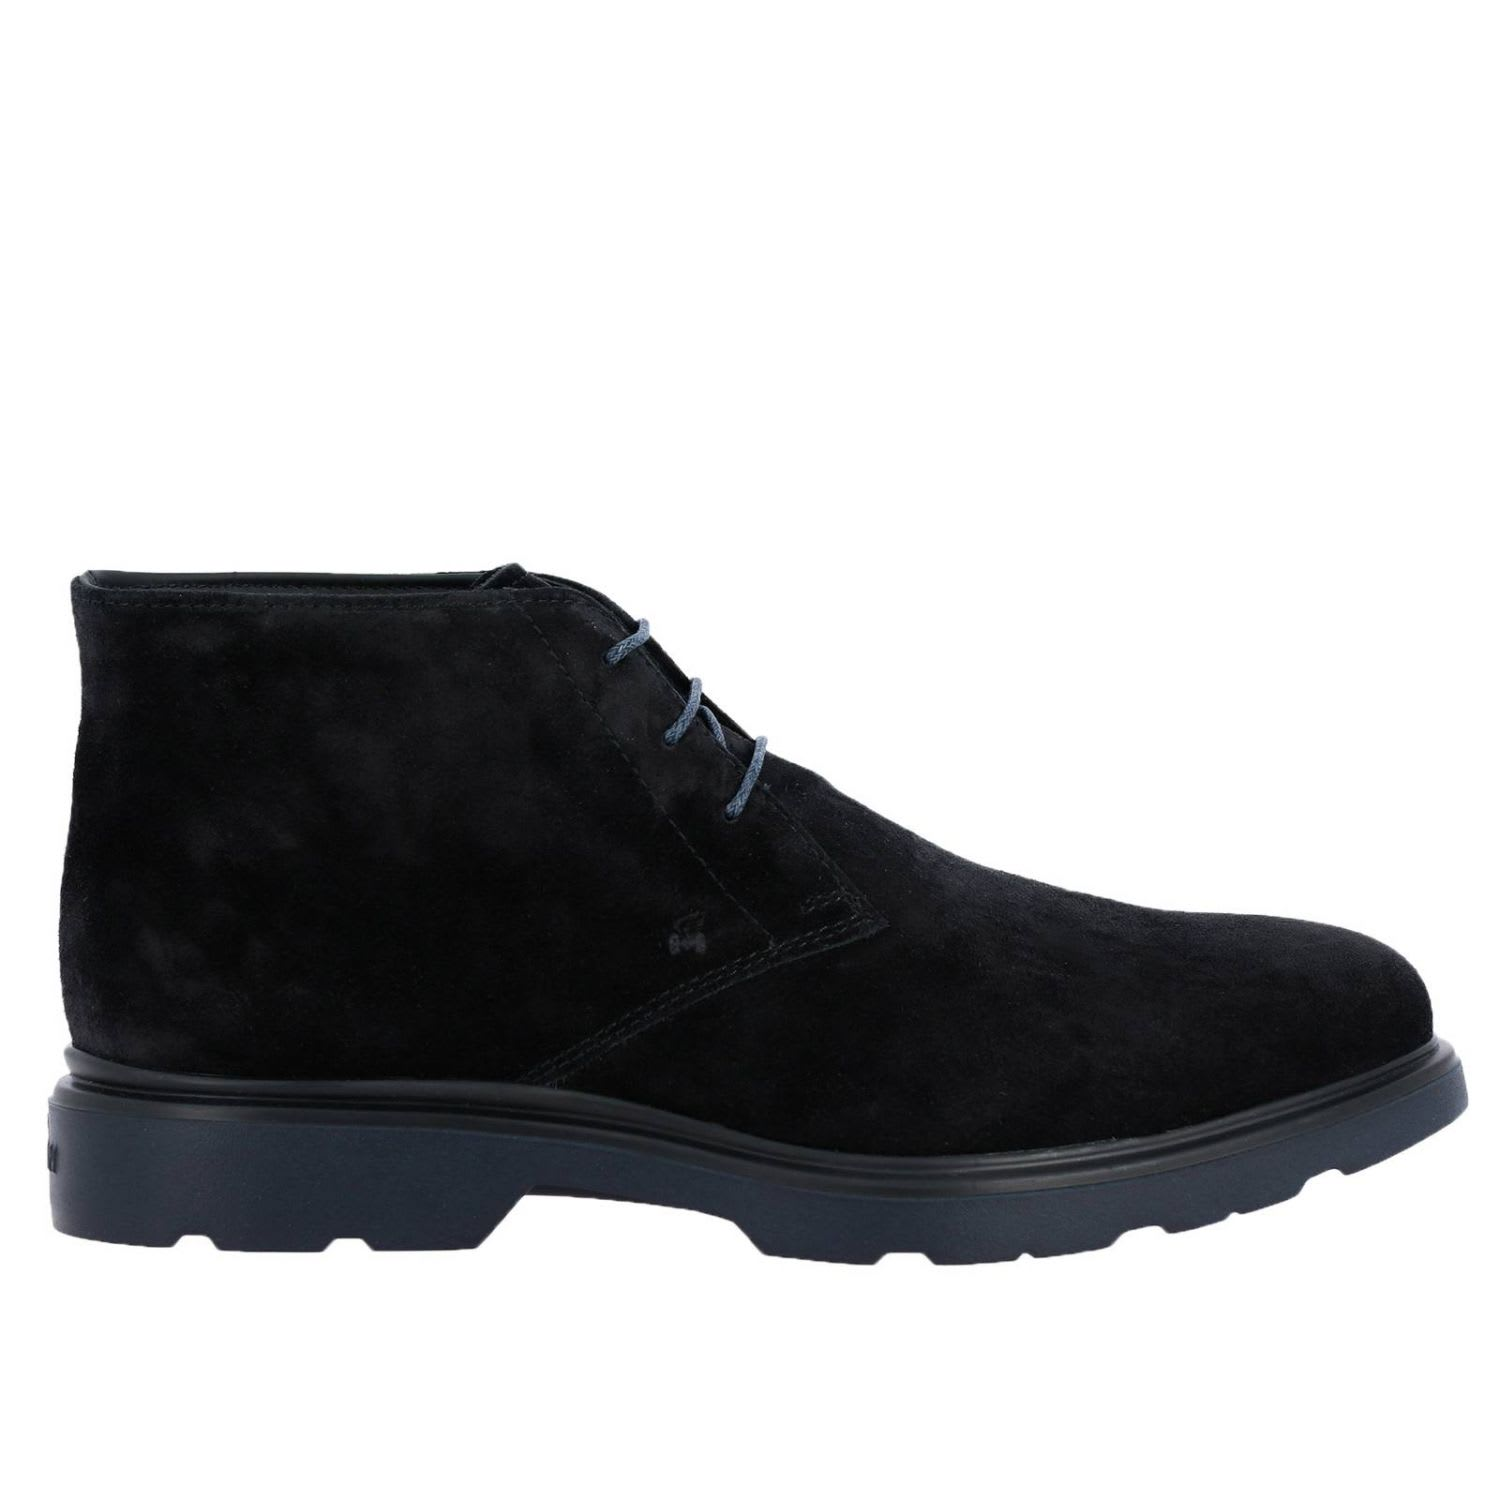 Hogan Chukka Boots Route 393 Ankle Boots (h304 + Memory Sole) Hogan In Suede